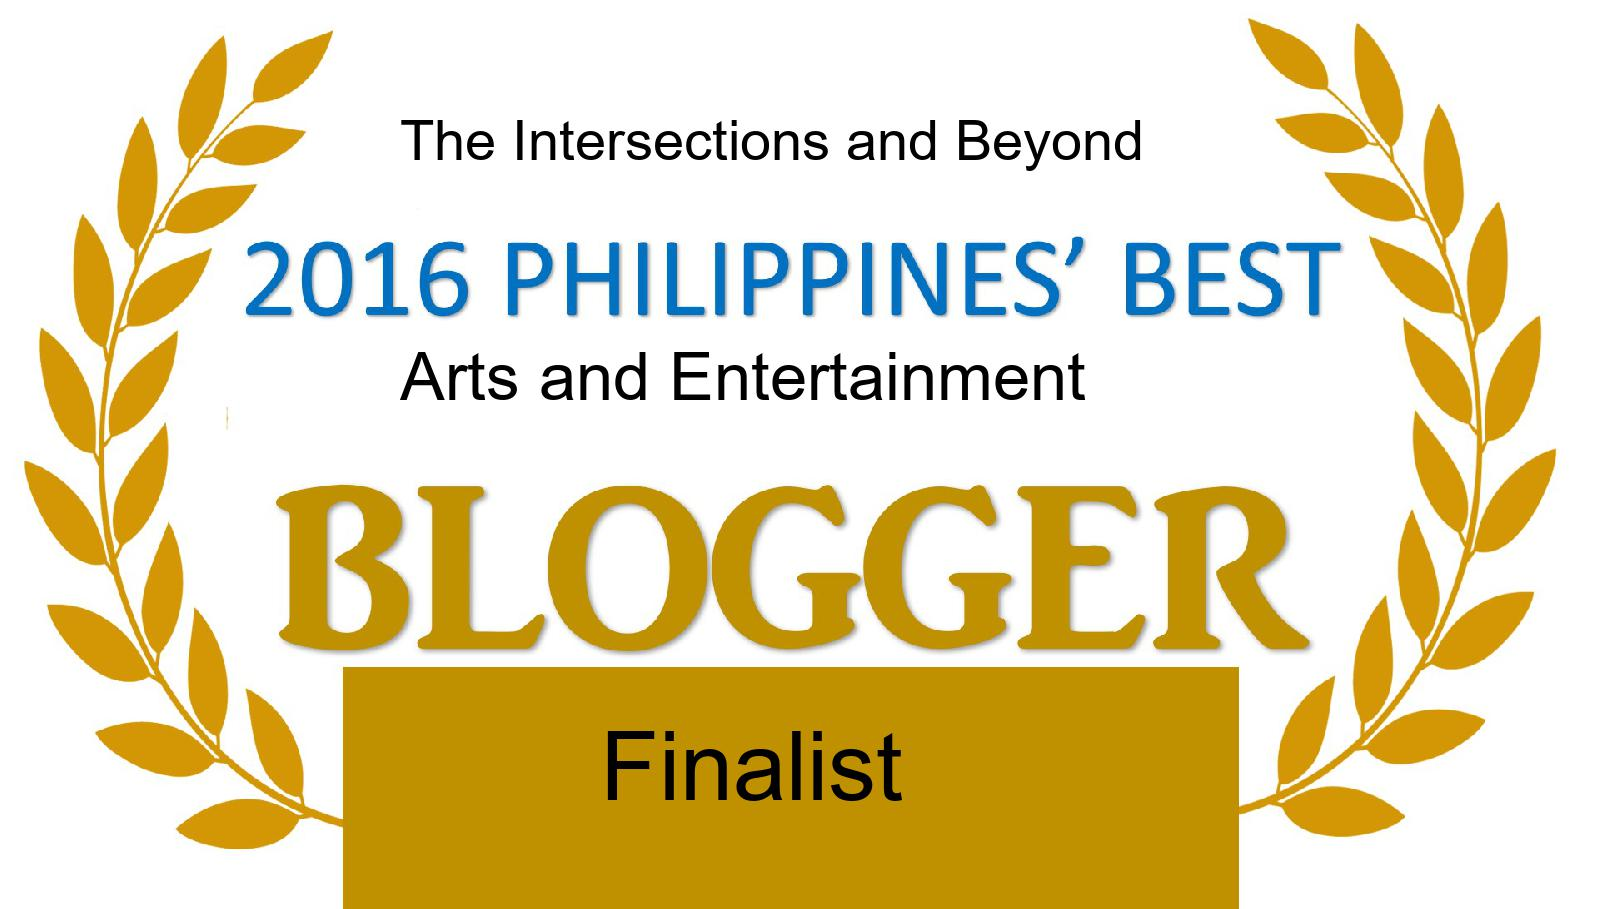 2016 Bloggers Awards